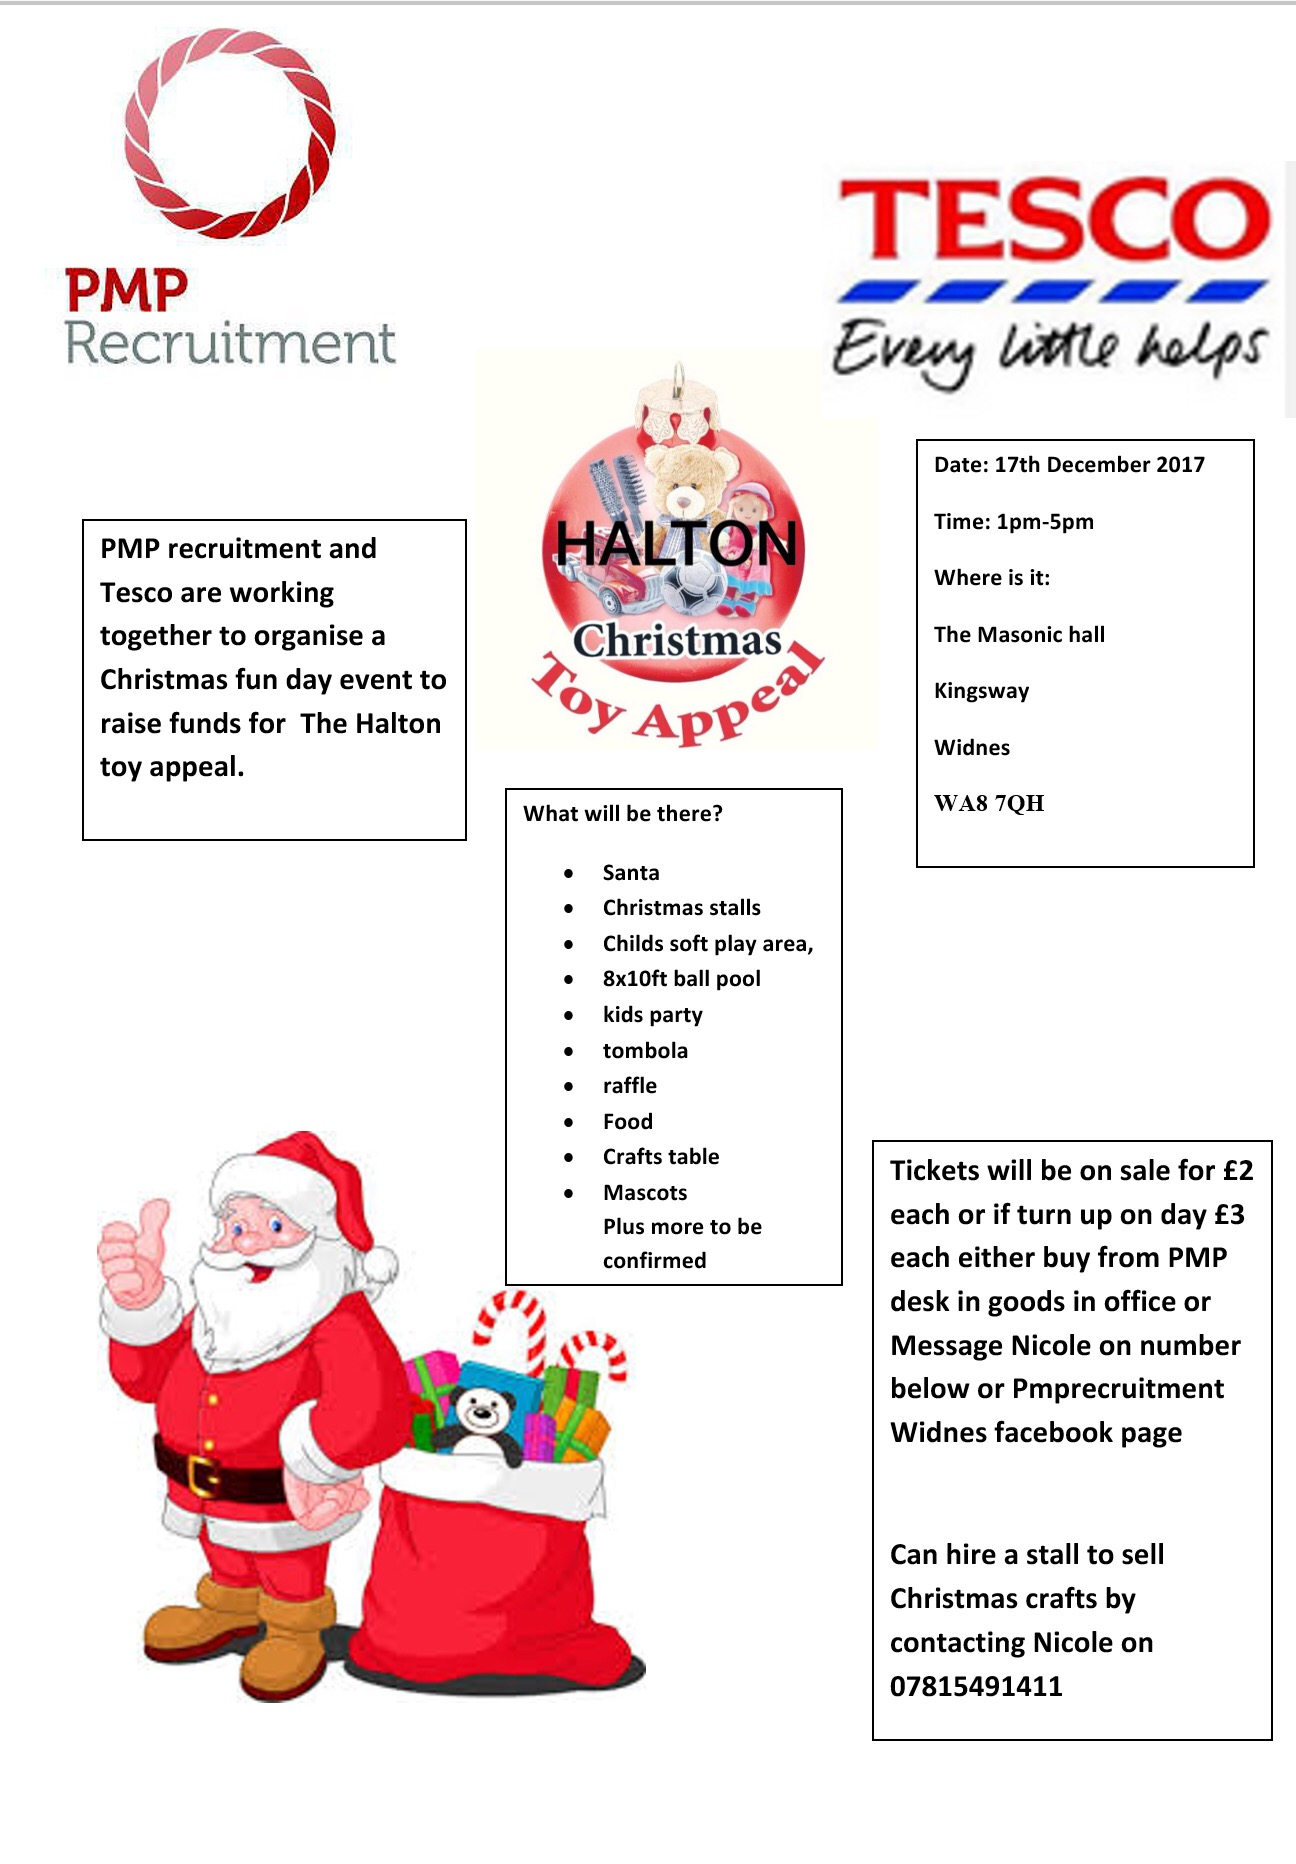 Tesco Xmas funday and pmp recruitment invite you all to there special funday